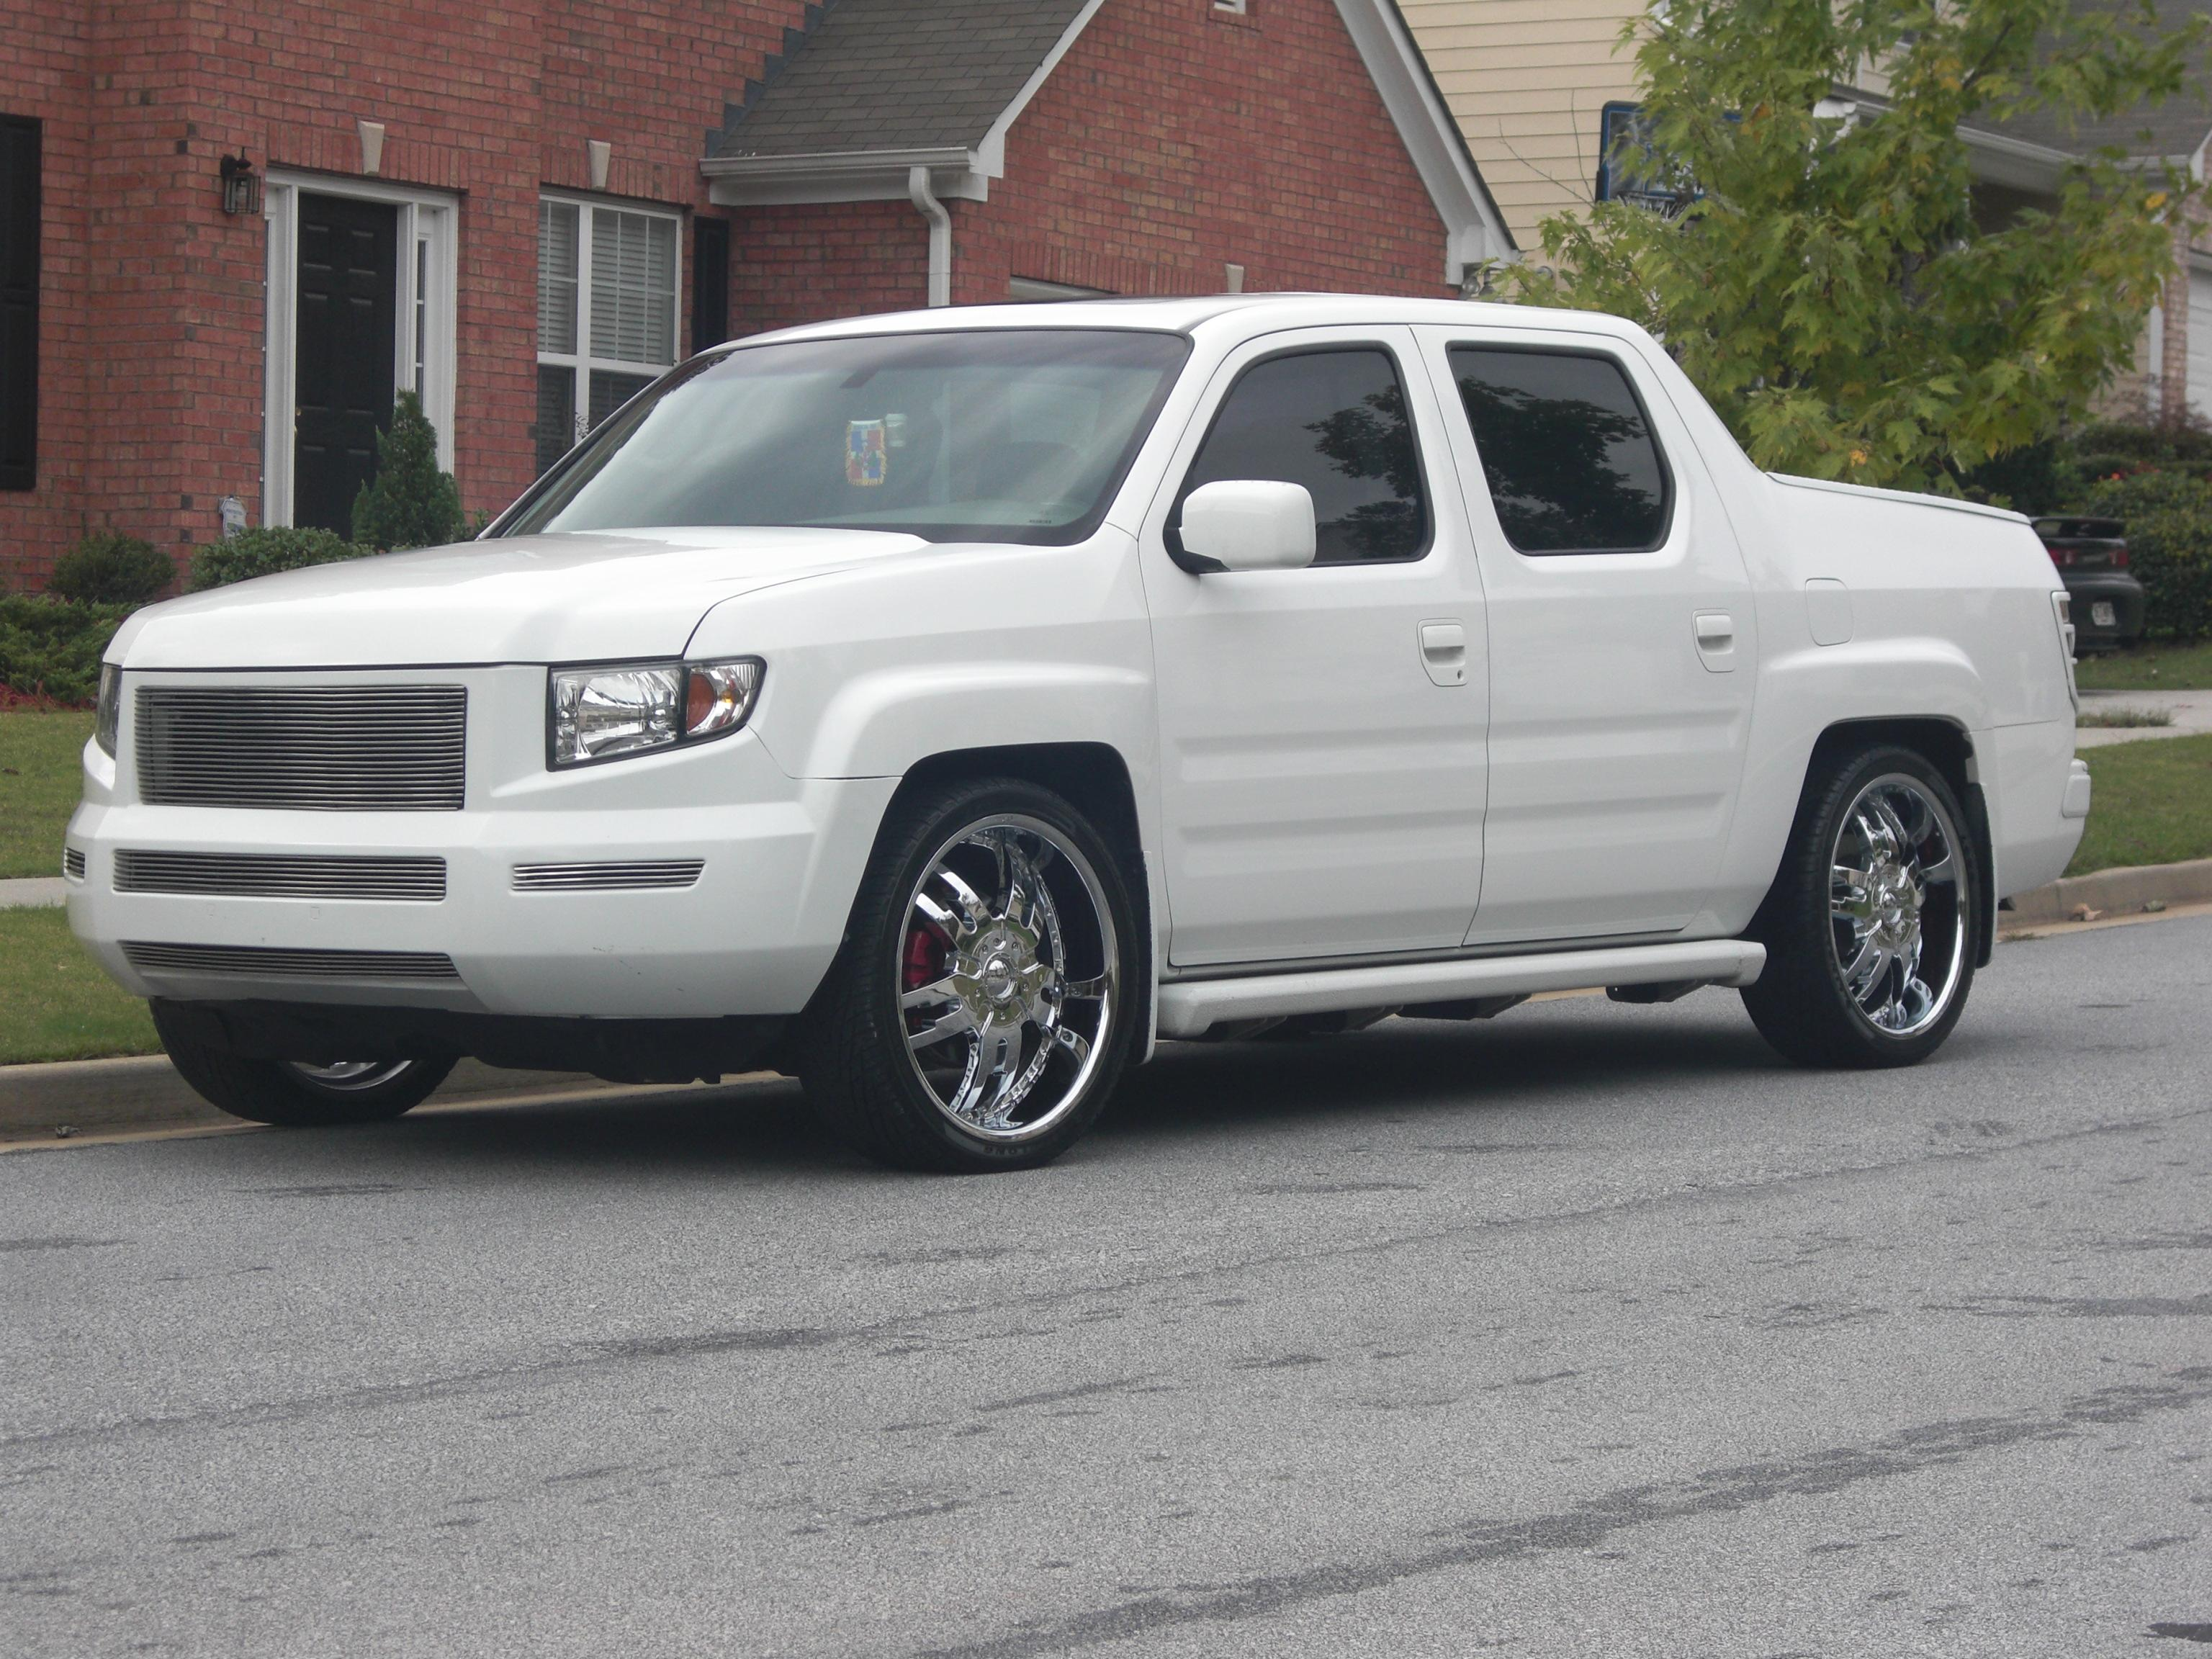 RALPH H 2006 Honda Ridgeline Specs, Photos, Modification Info at CarDomain